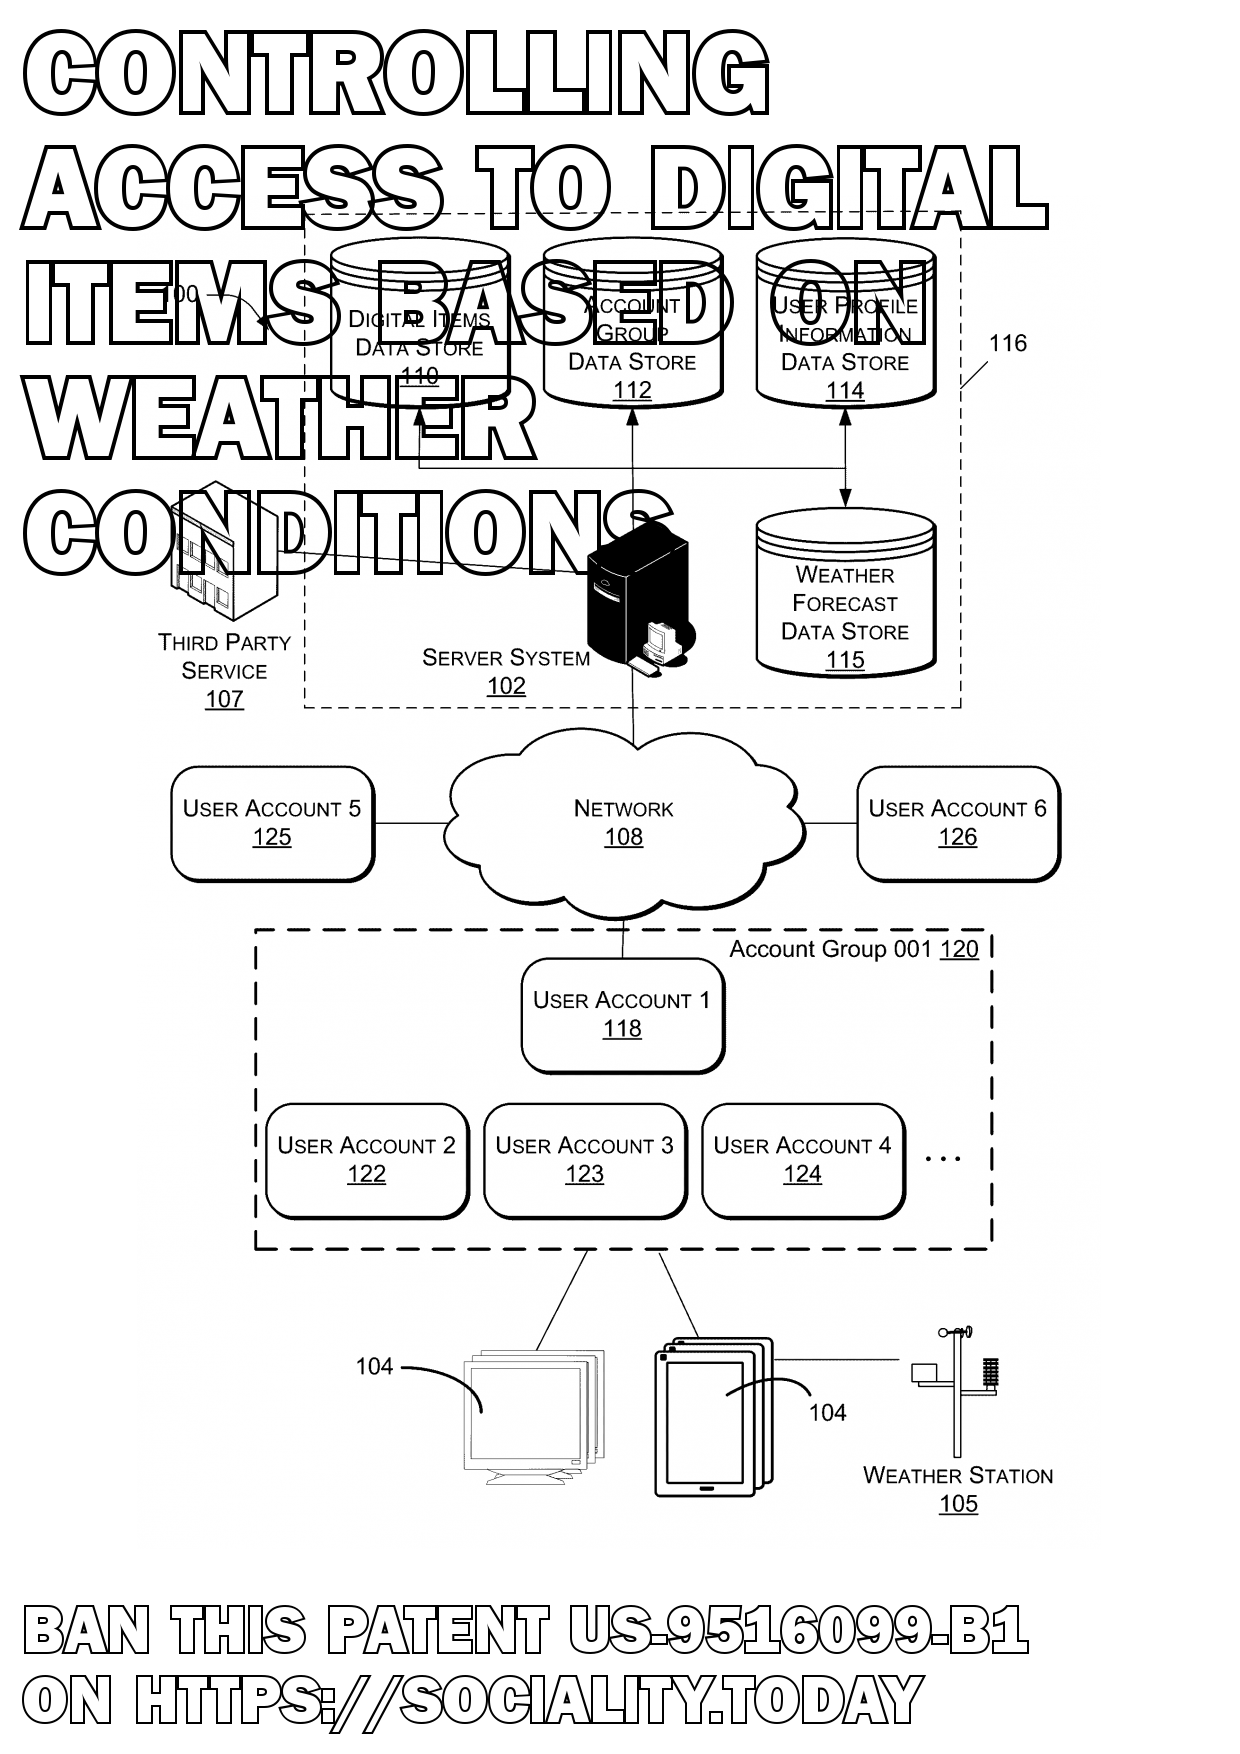 Controlling access to digital items based on weather conditions  - US-9516099-B1